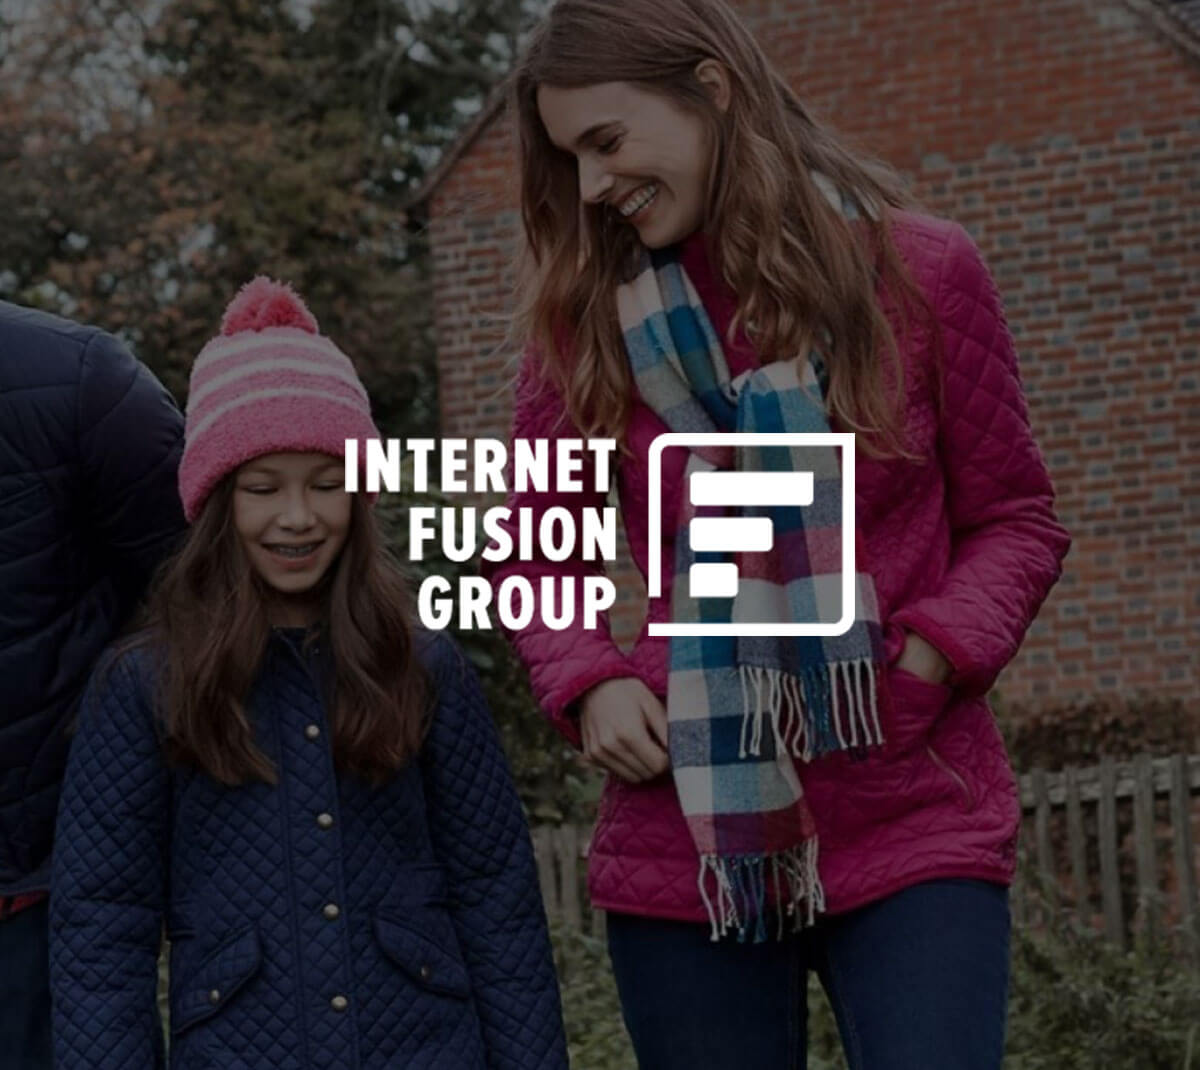 Internet Fusion Group - case study